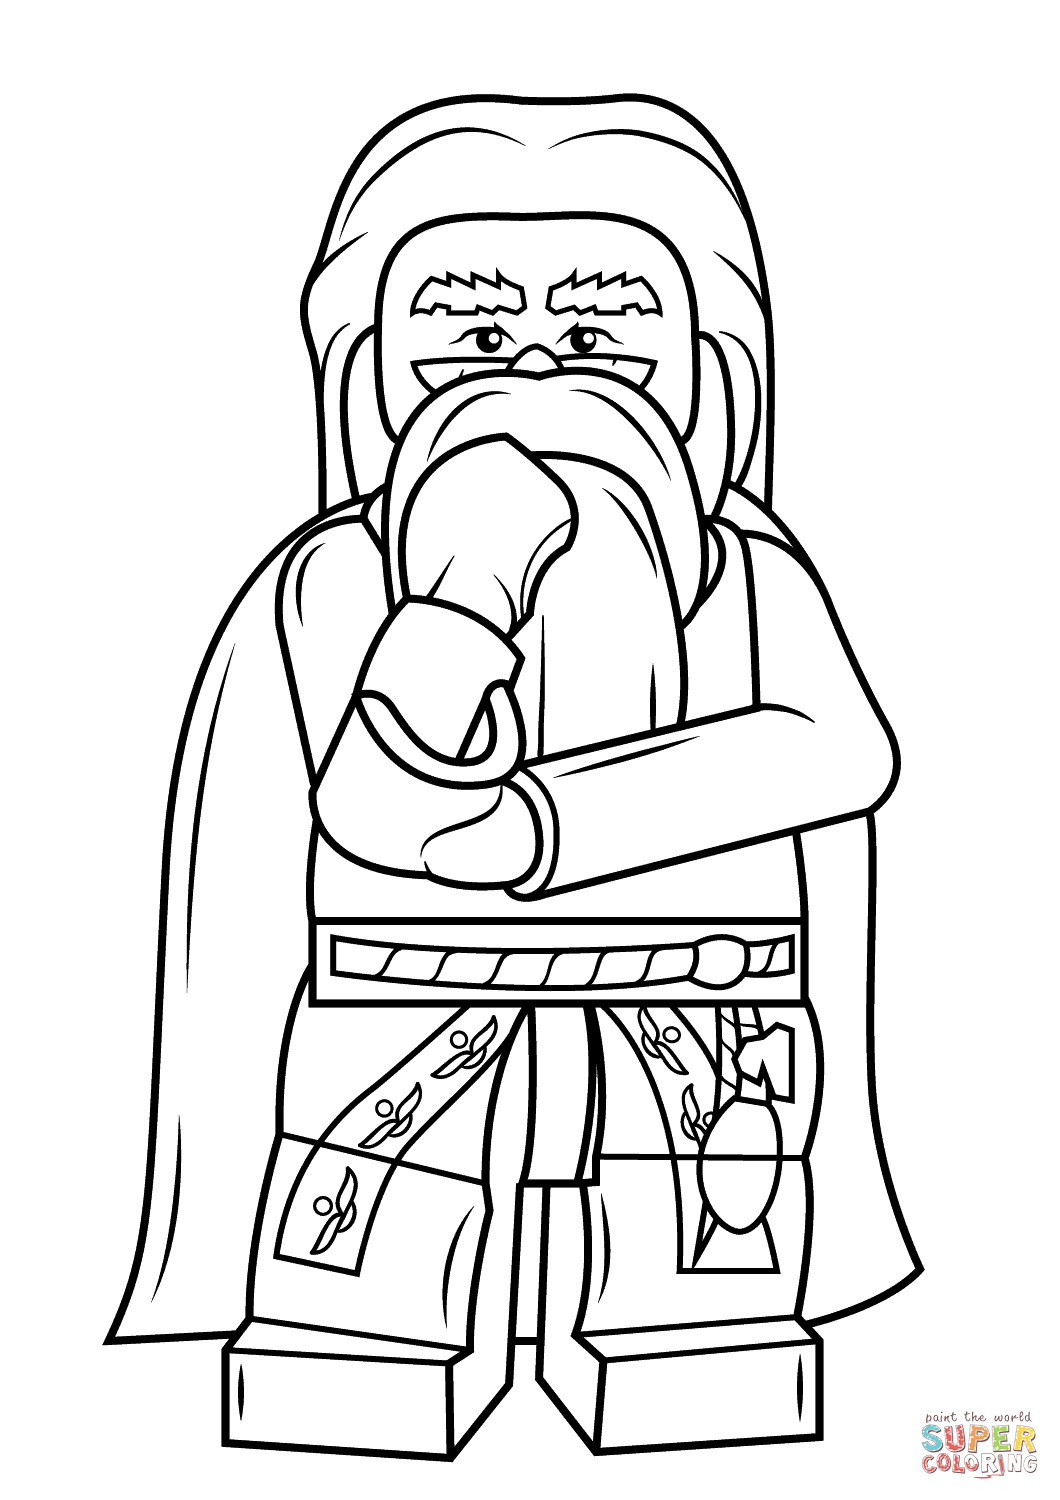 Harry Potter Lego Coloring Pages encequiconcerne Dessin D Harry Potter